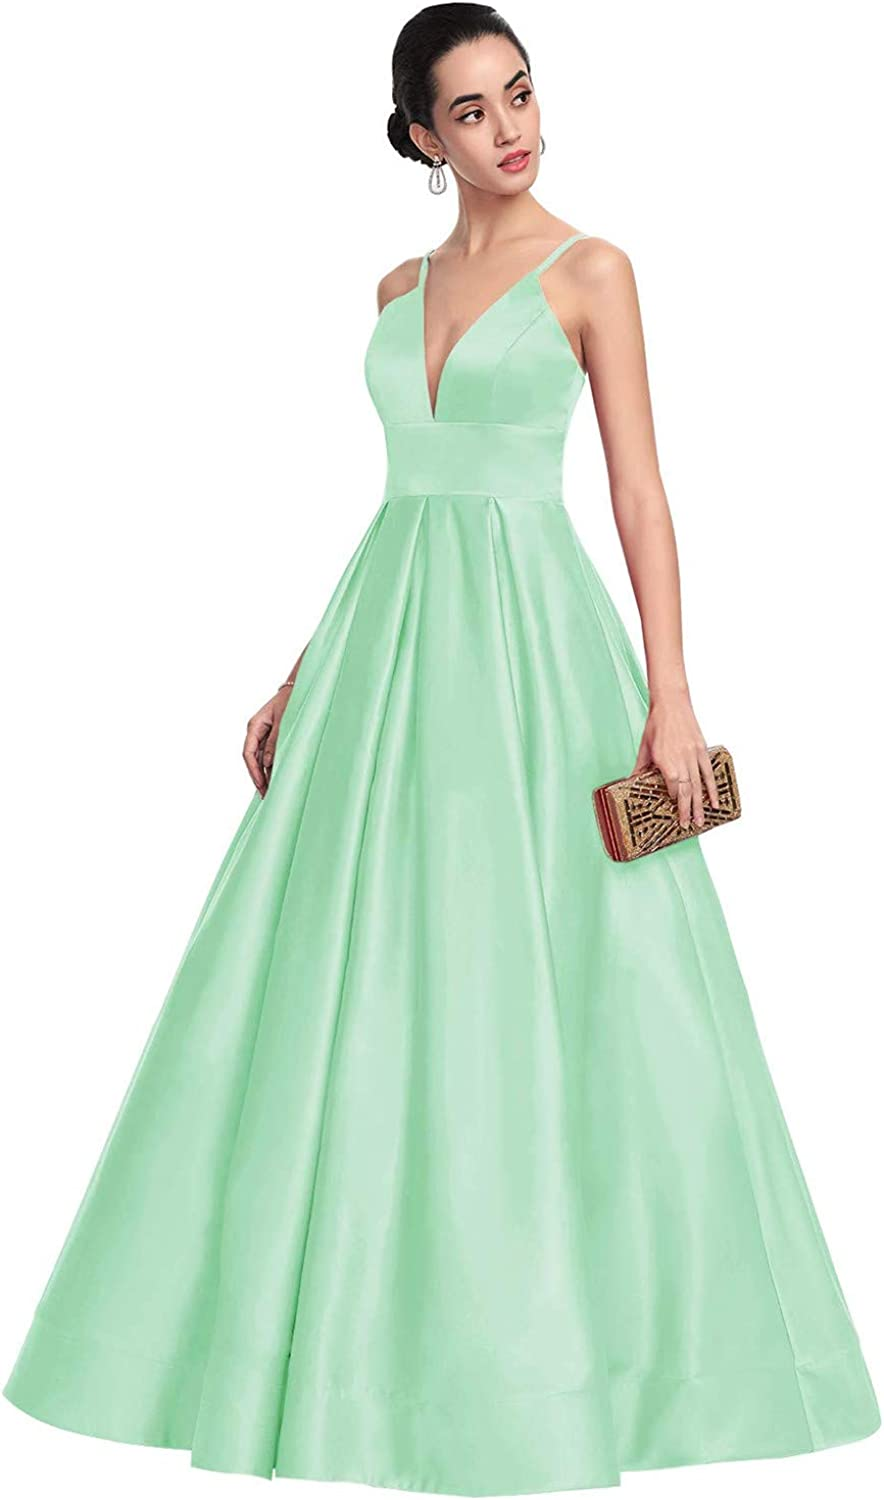 Womens V-Neck Princess Ballgown Long Prom Dresses Satin Formal Evening Gowns with Pockets